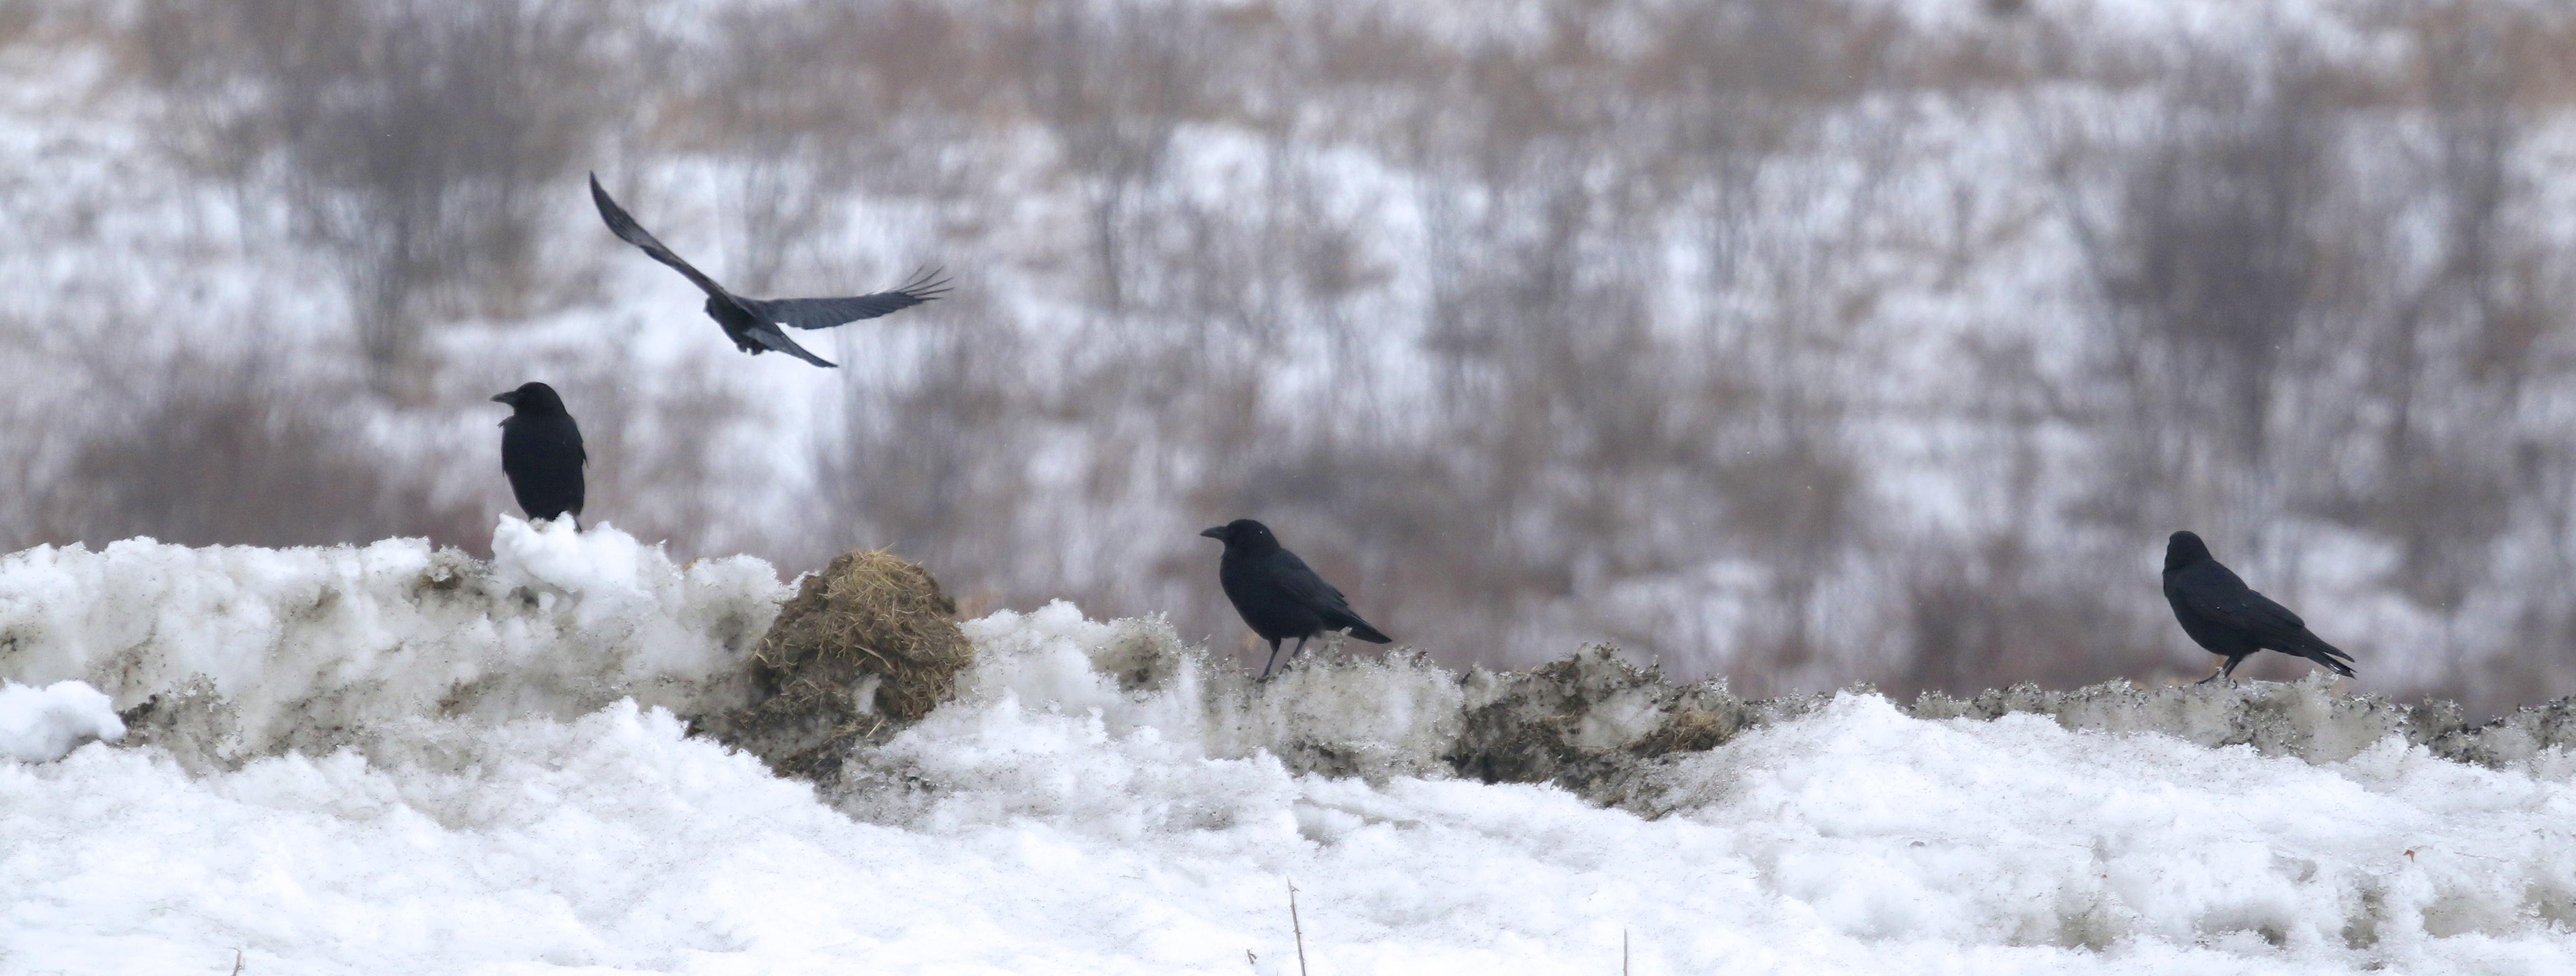 It's tough to get a good shot of American Crows. Pierce Circle, 3/2/14.